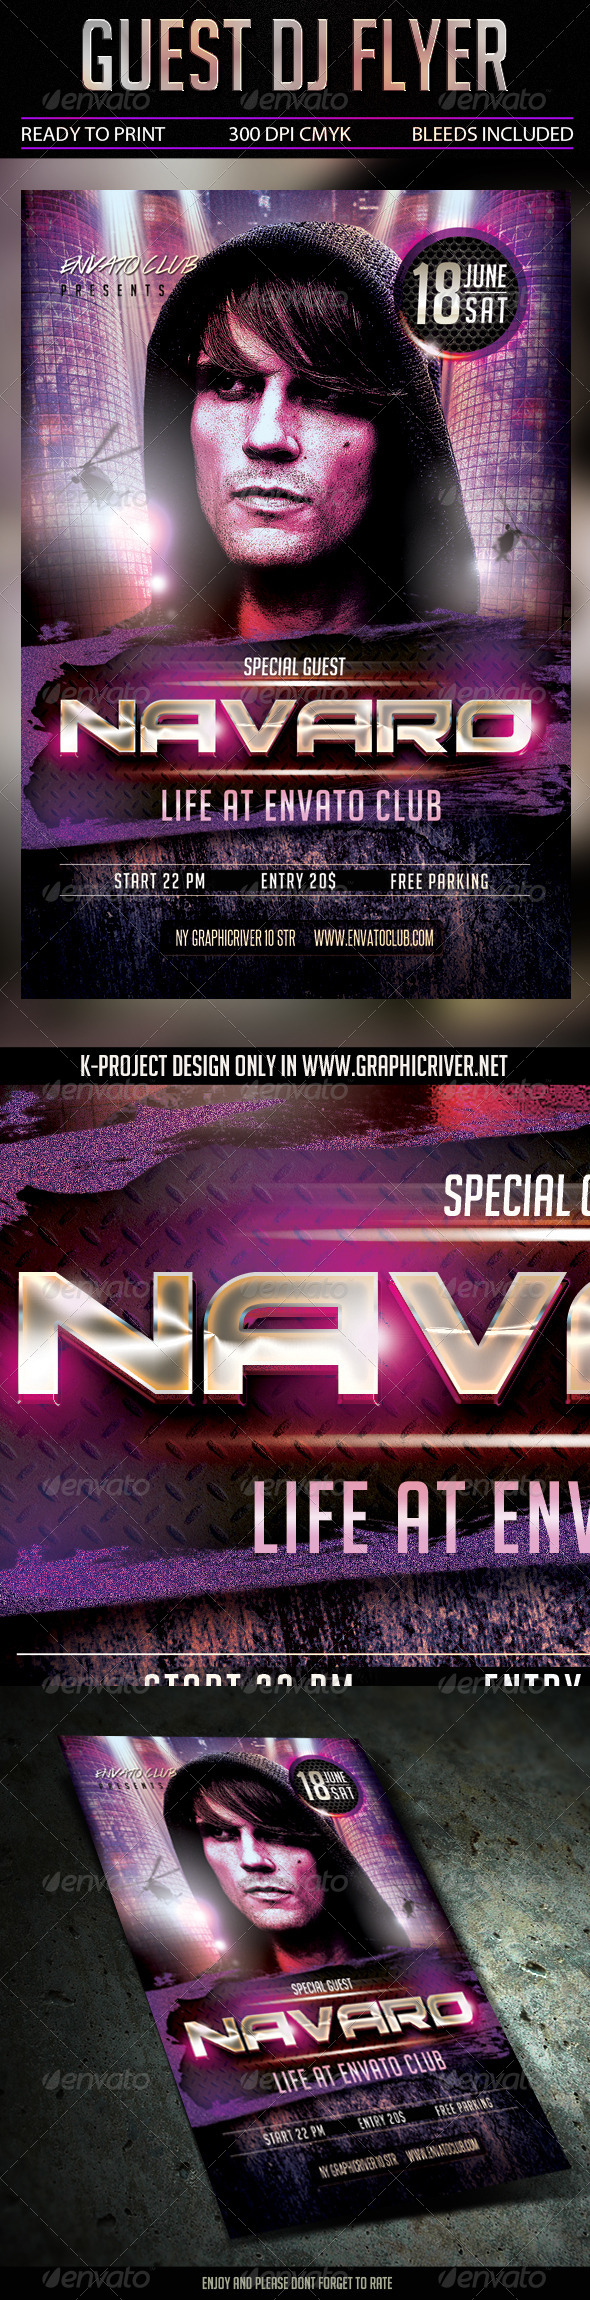 GraphicRiver Special Guest DJ Flyer 7752753